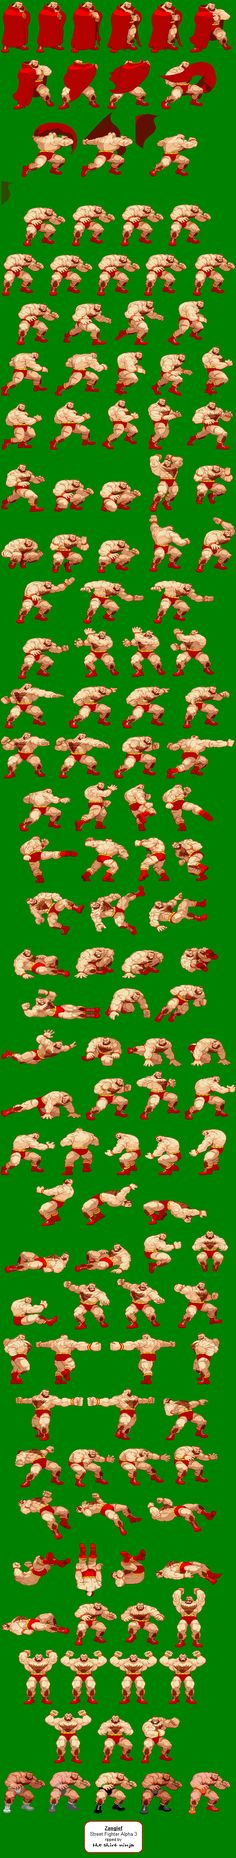 "Capcom - ""Street Fighter"" Game Sprites"